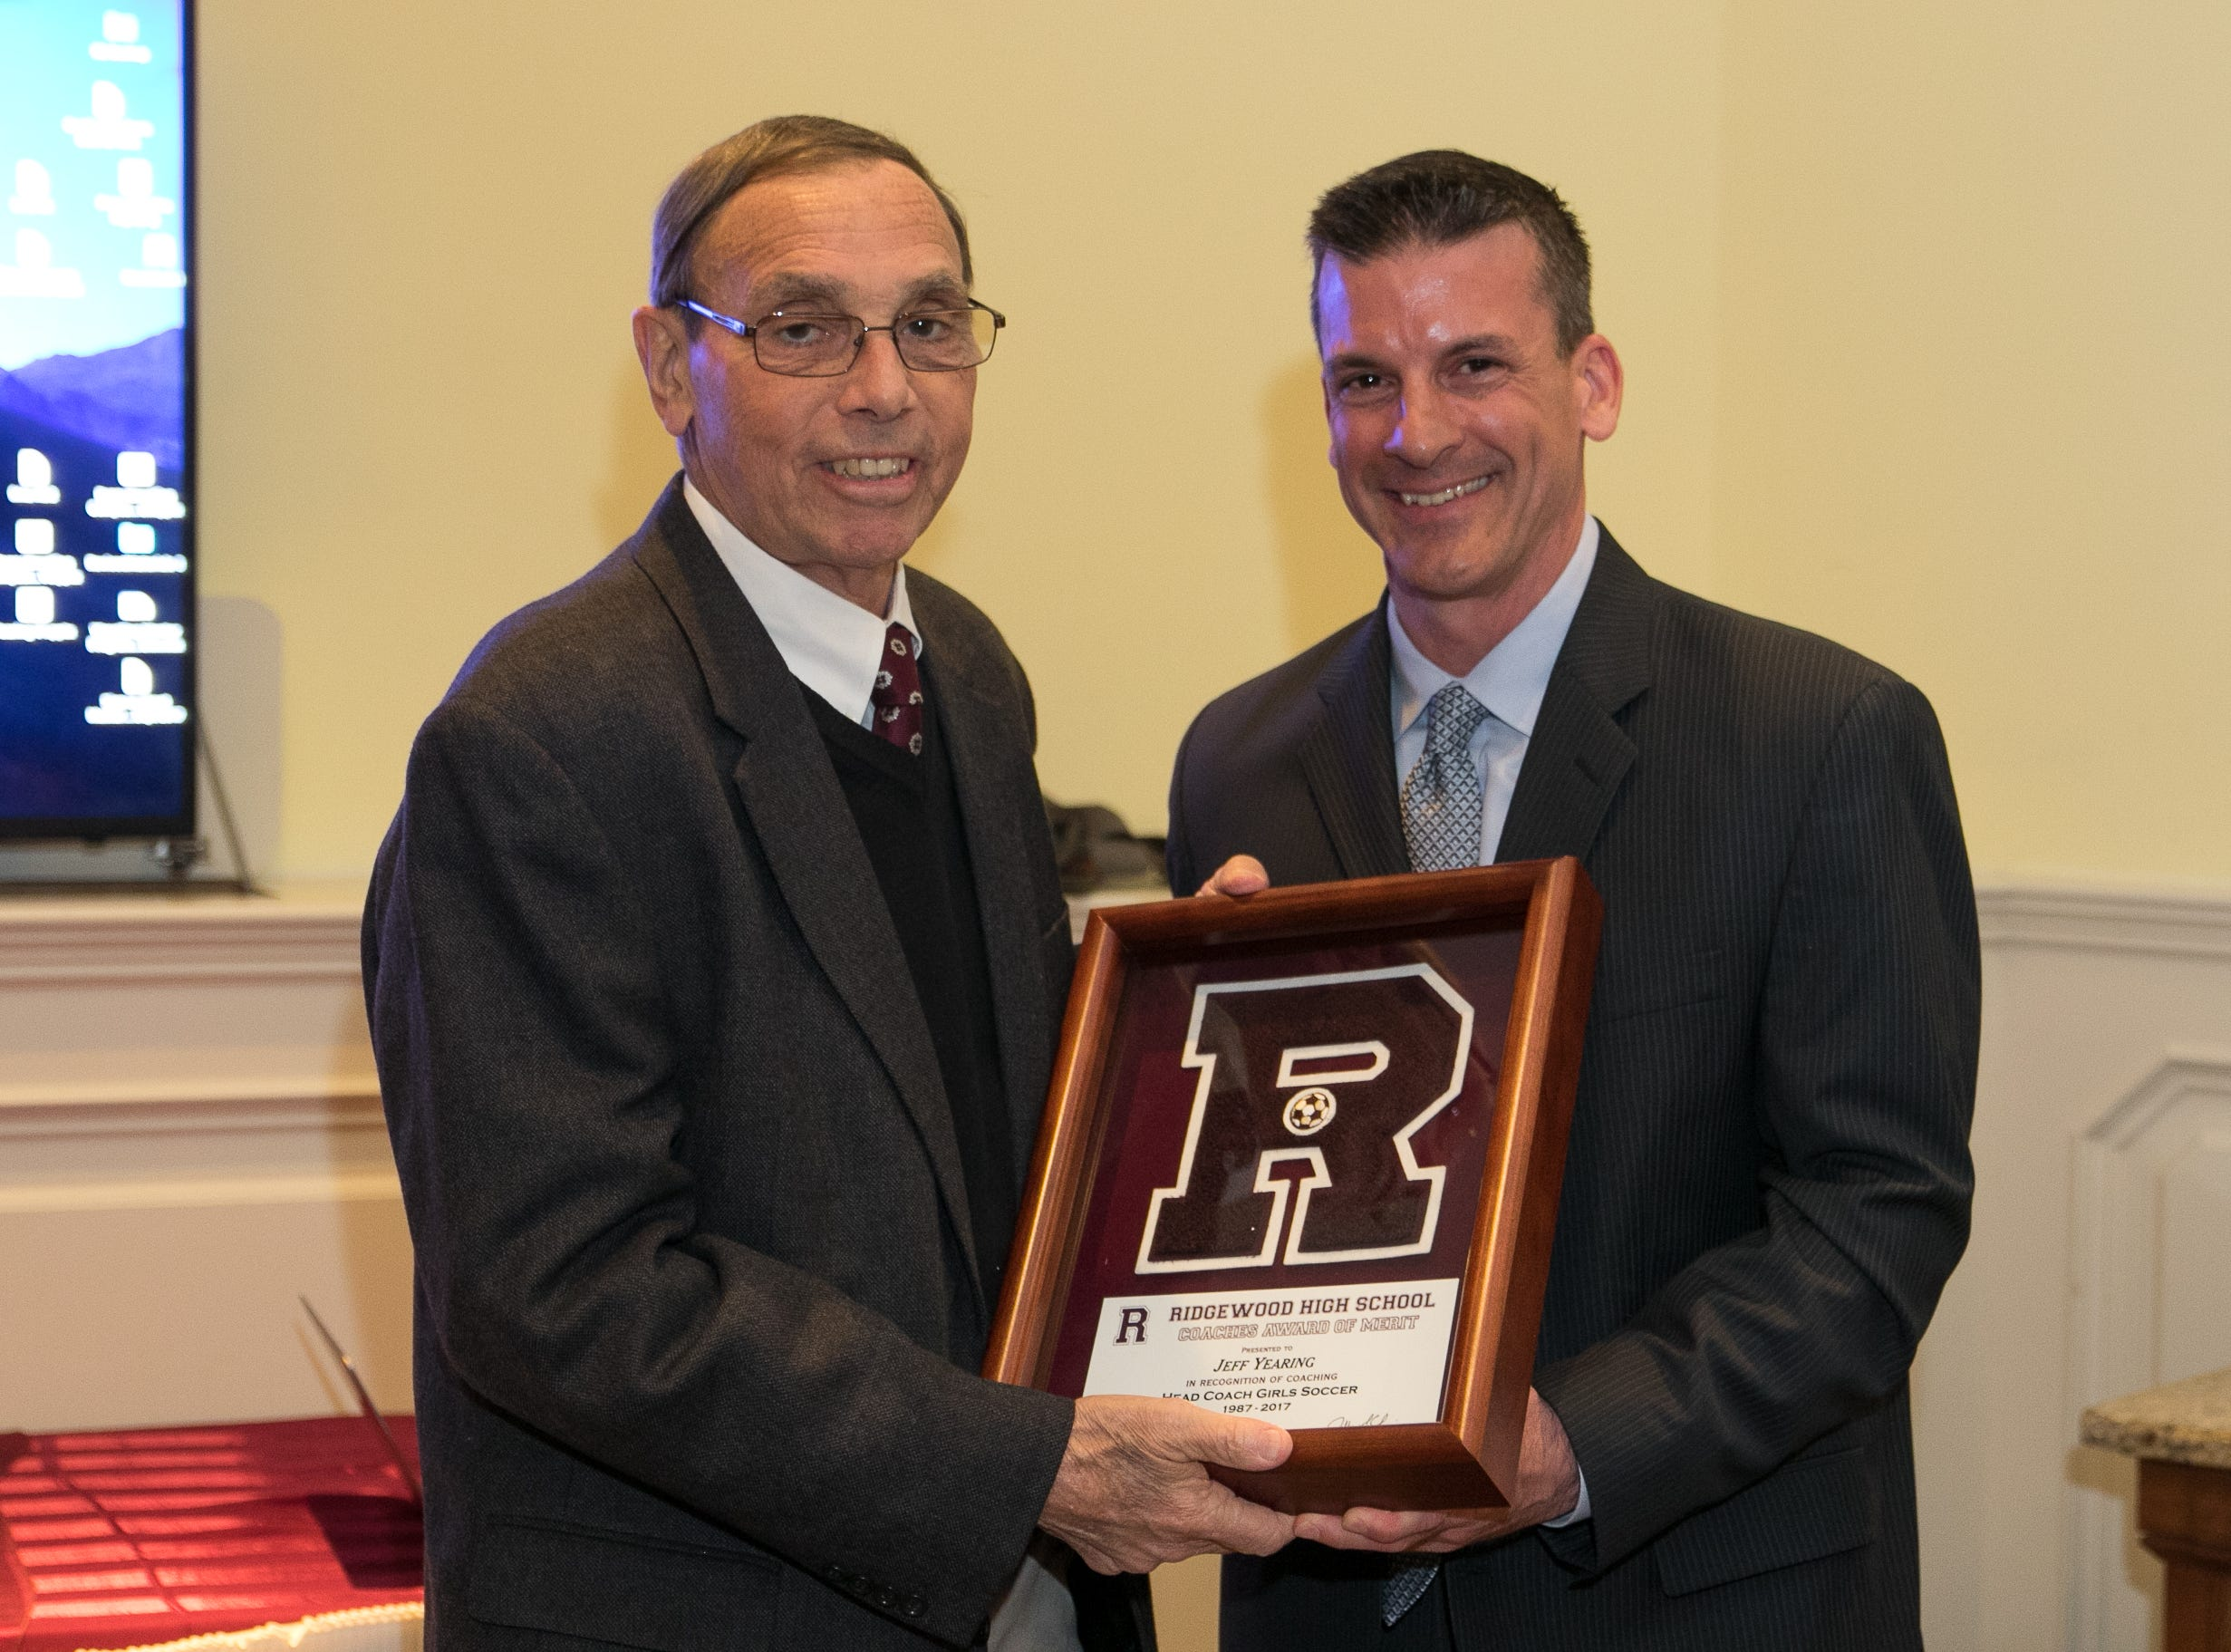 Honored inductee Coach Jeff Yearing with Keith Cook. Ridgewood High School held it's Hall of Fame Class of 2018 Induction Dinner, honoring long time coach Jeff Yearing at the Brickhouse in Wyckoff. 04/05/2019